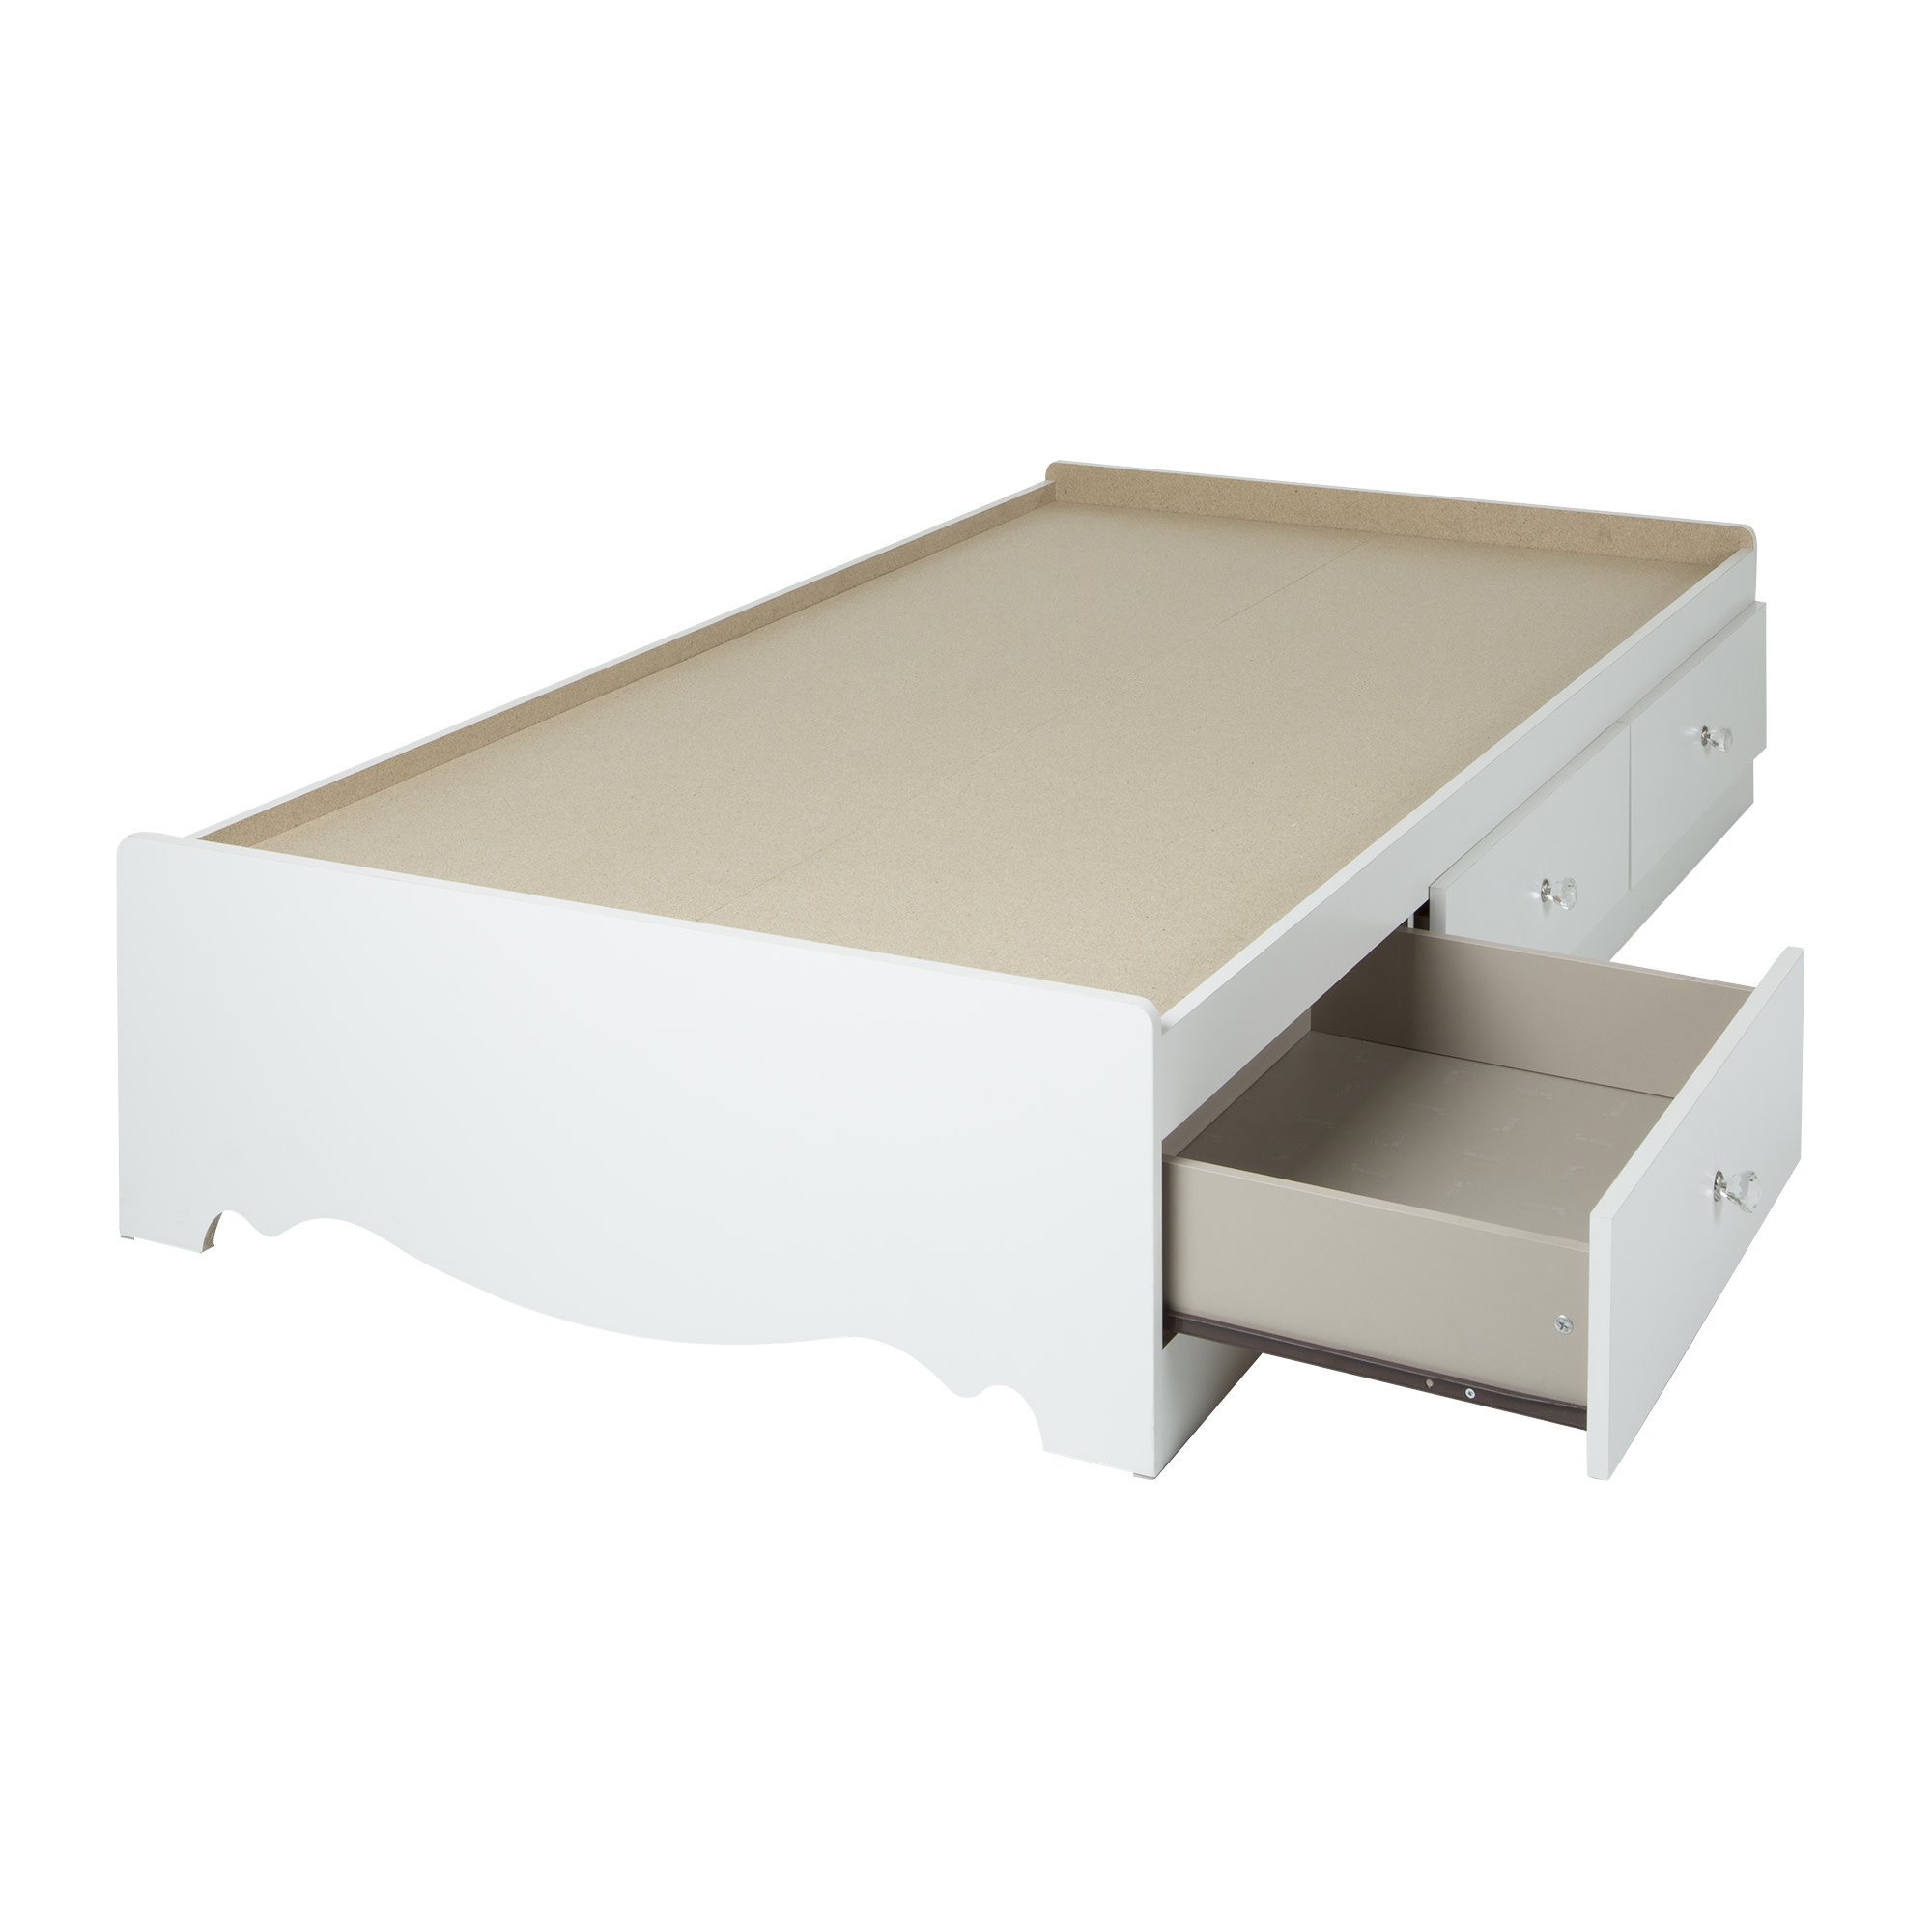 Crystal Mates Bed With 3 Drawers Twin Size White Walmart Com Walmart Com